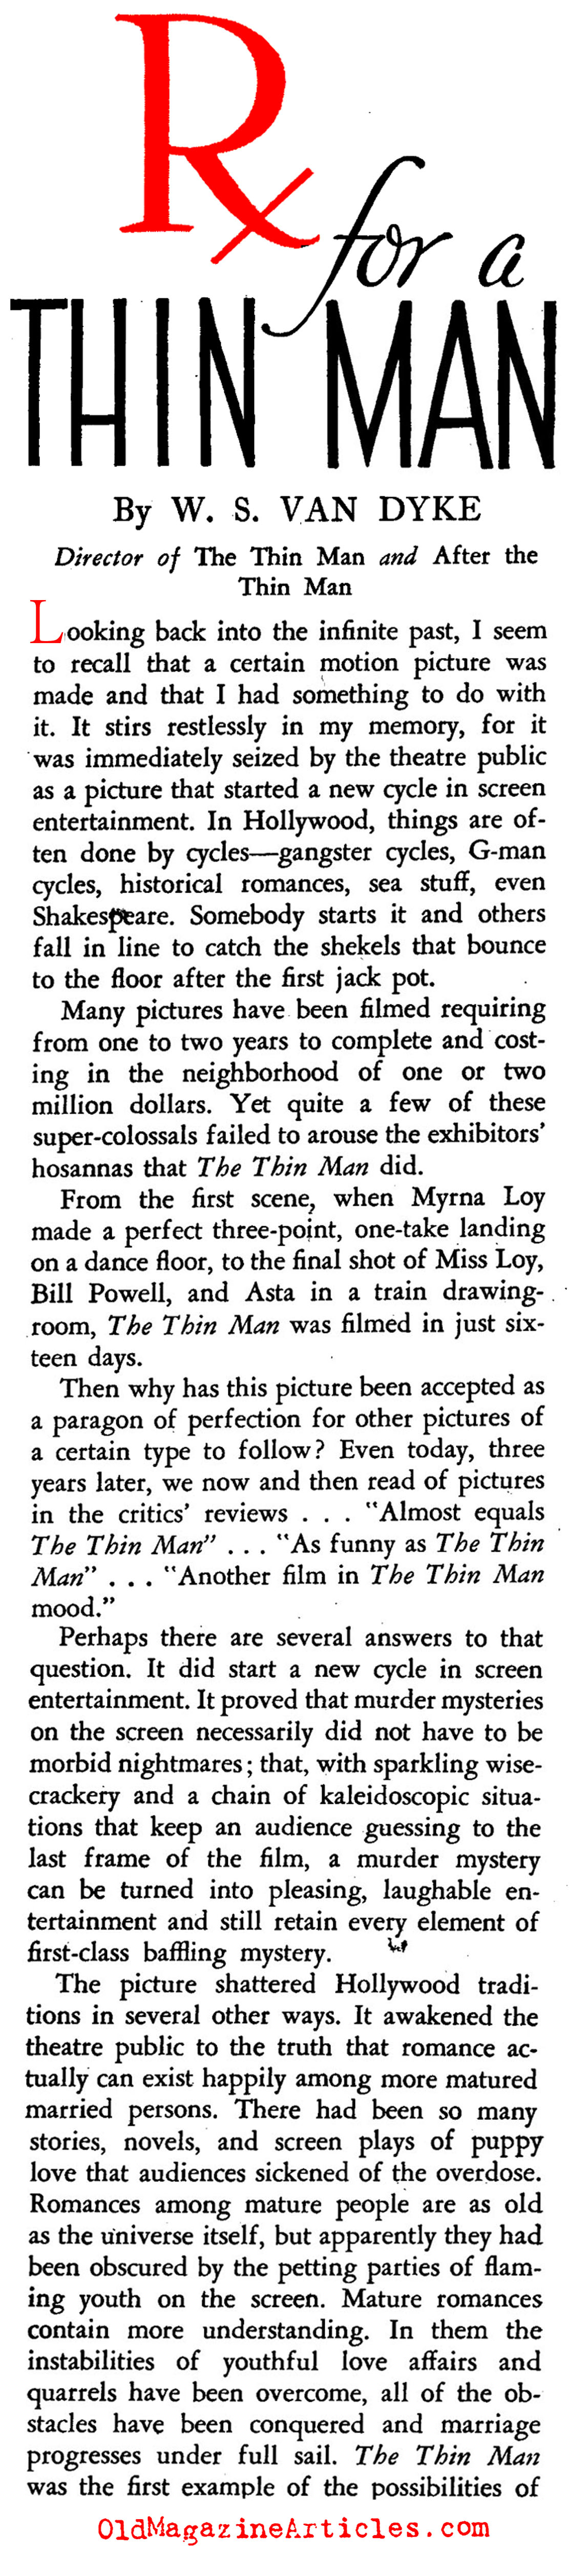 The Thin Man (Stage Magazine, 1937)